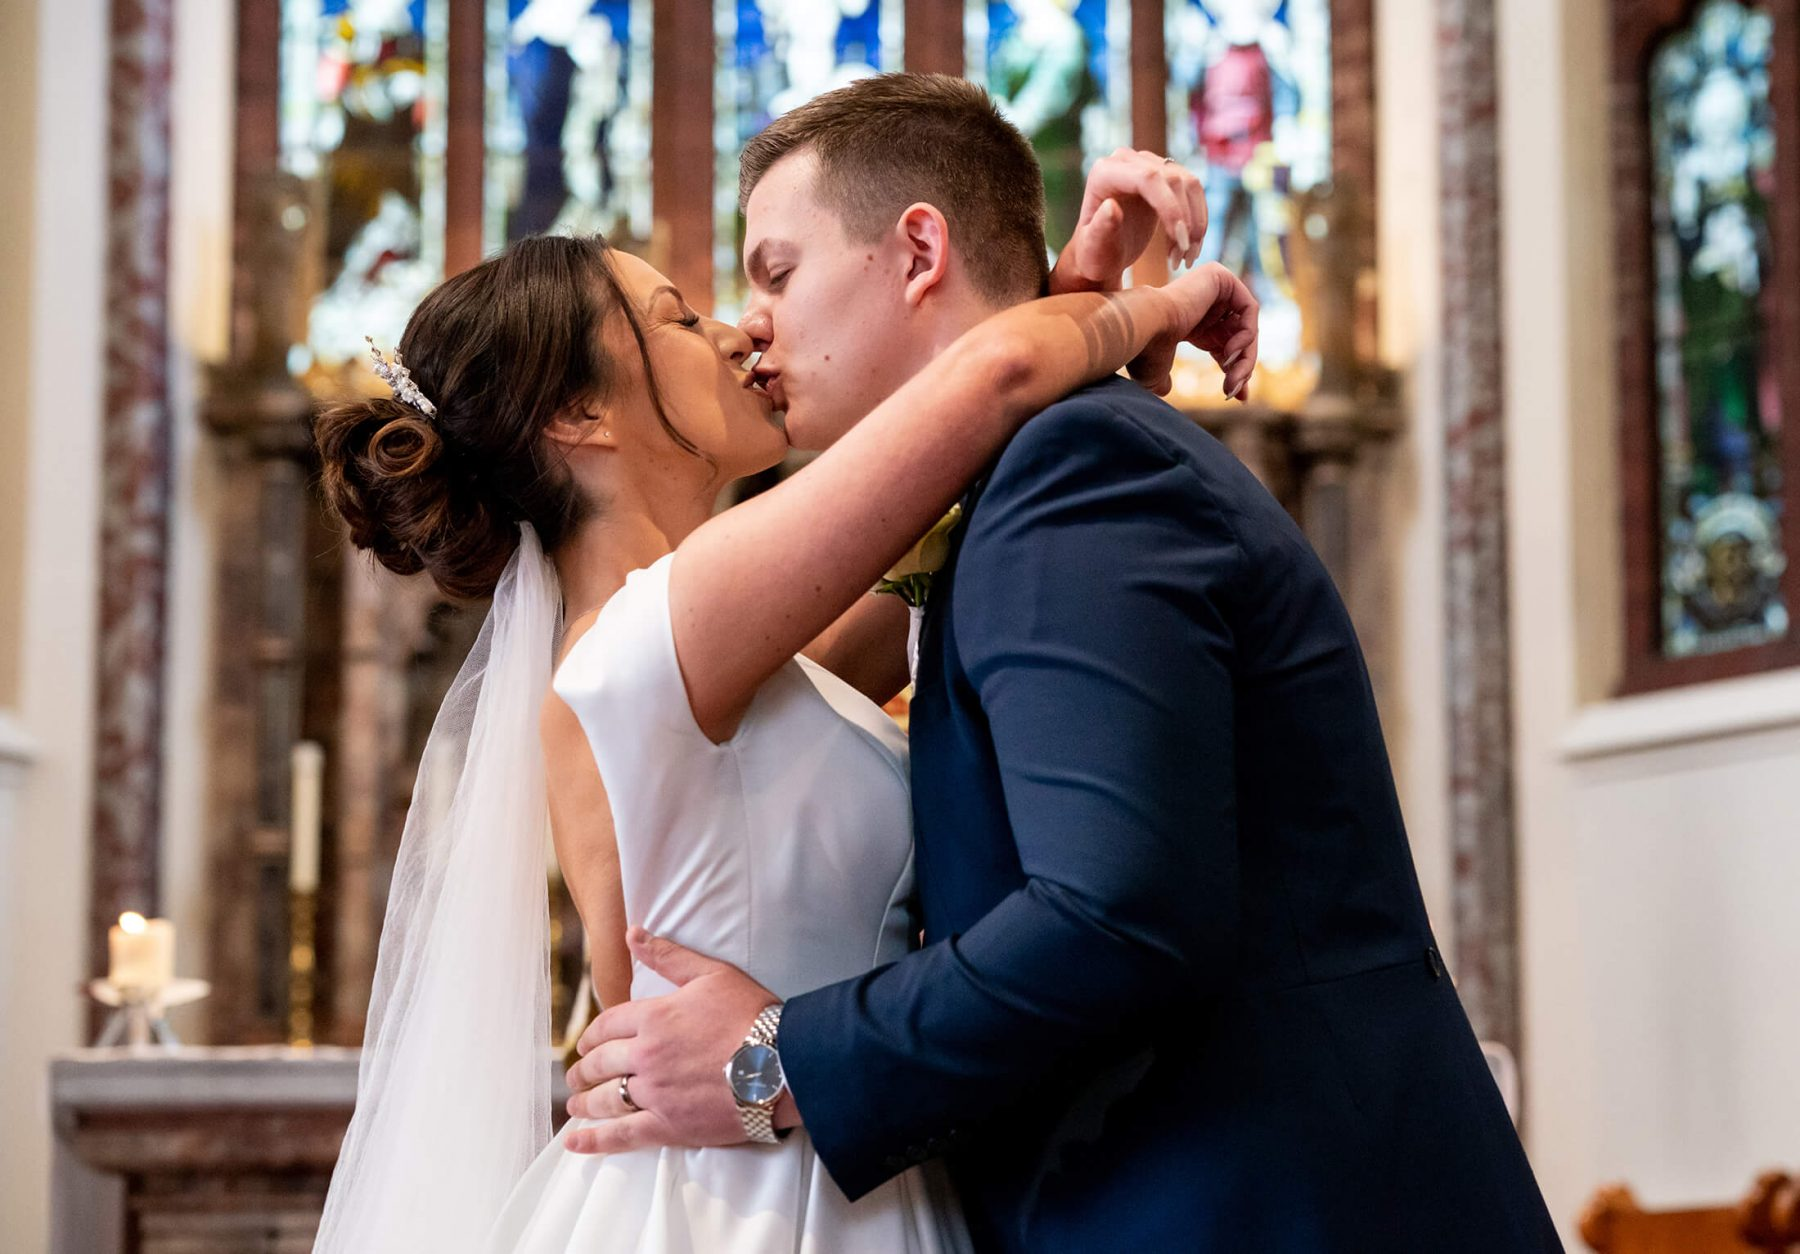 Bride and groom kissing in the church after getting married